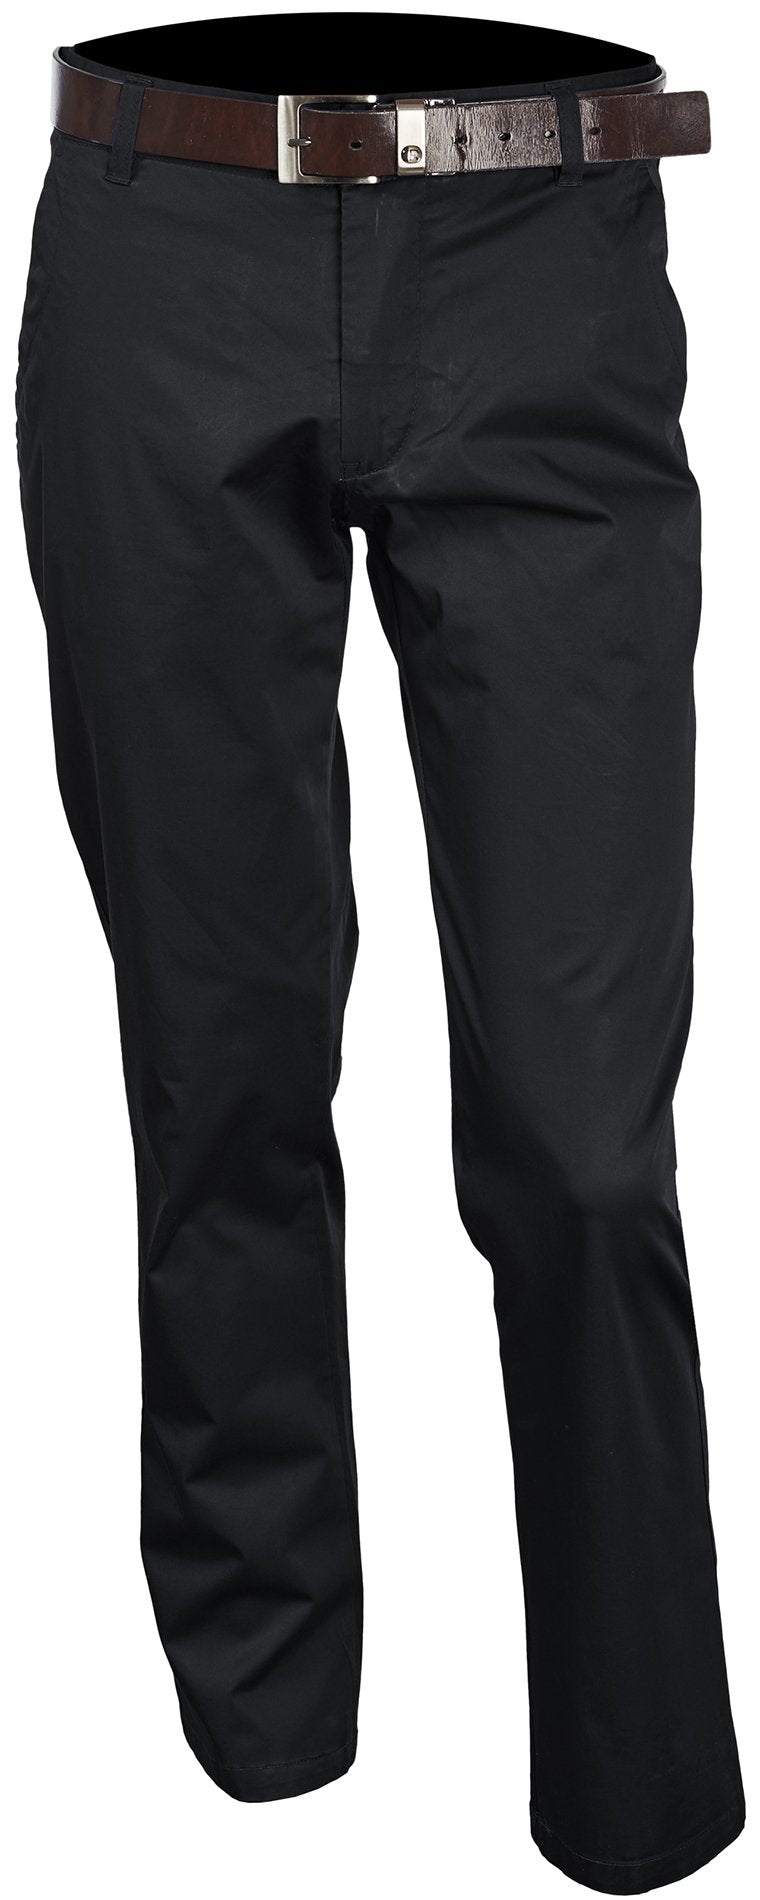 Inserch Brushed Cotton Chinos P021-01 Black